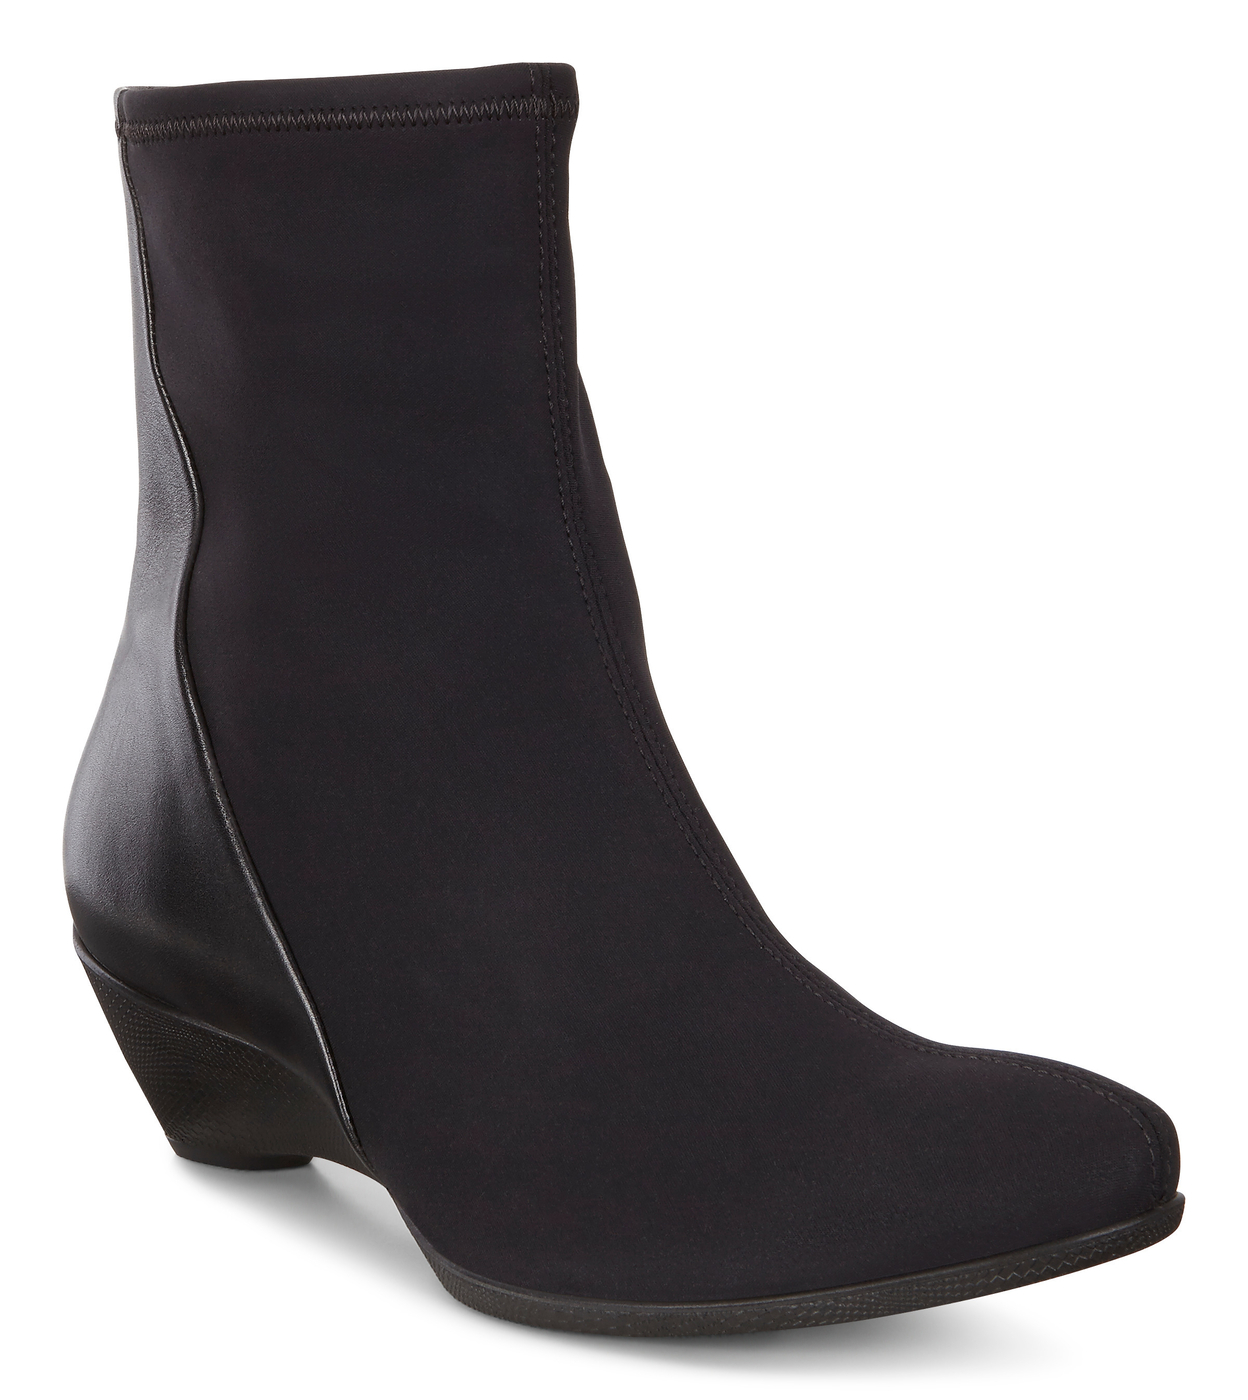 ECCO SCULPTURED 45 W Ankle Boo